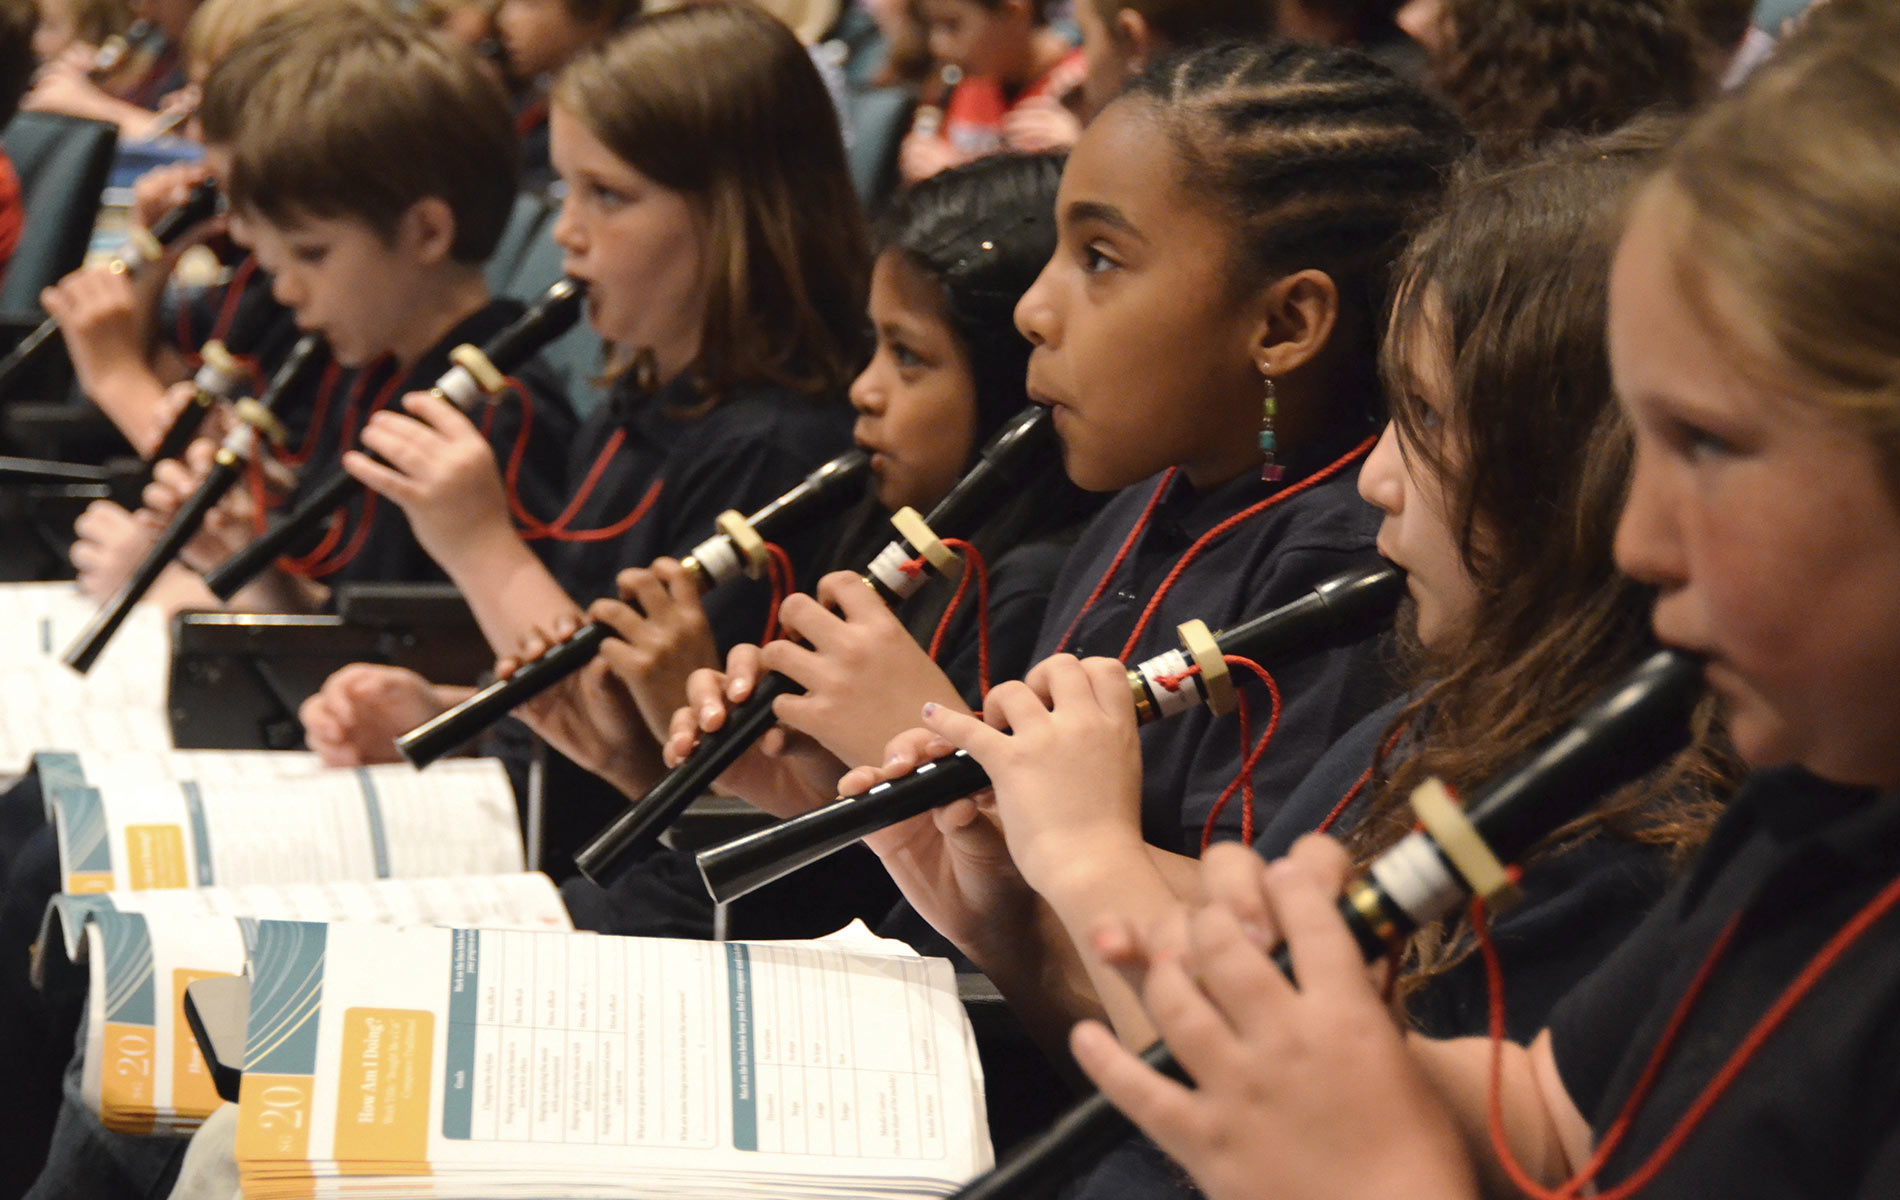 Sinfonia education program students learning how to play clarinets